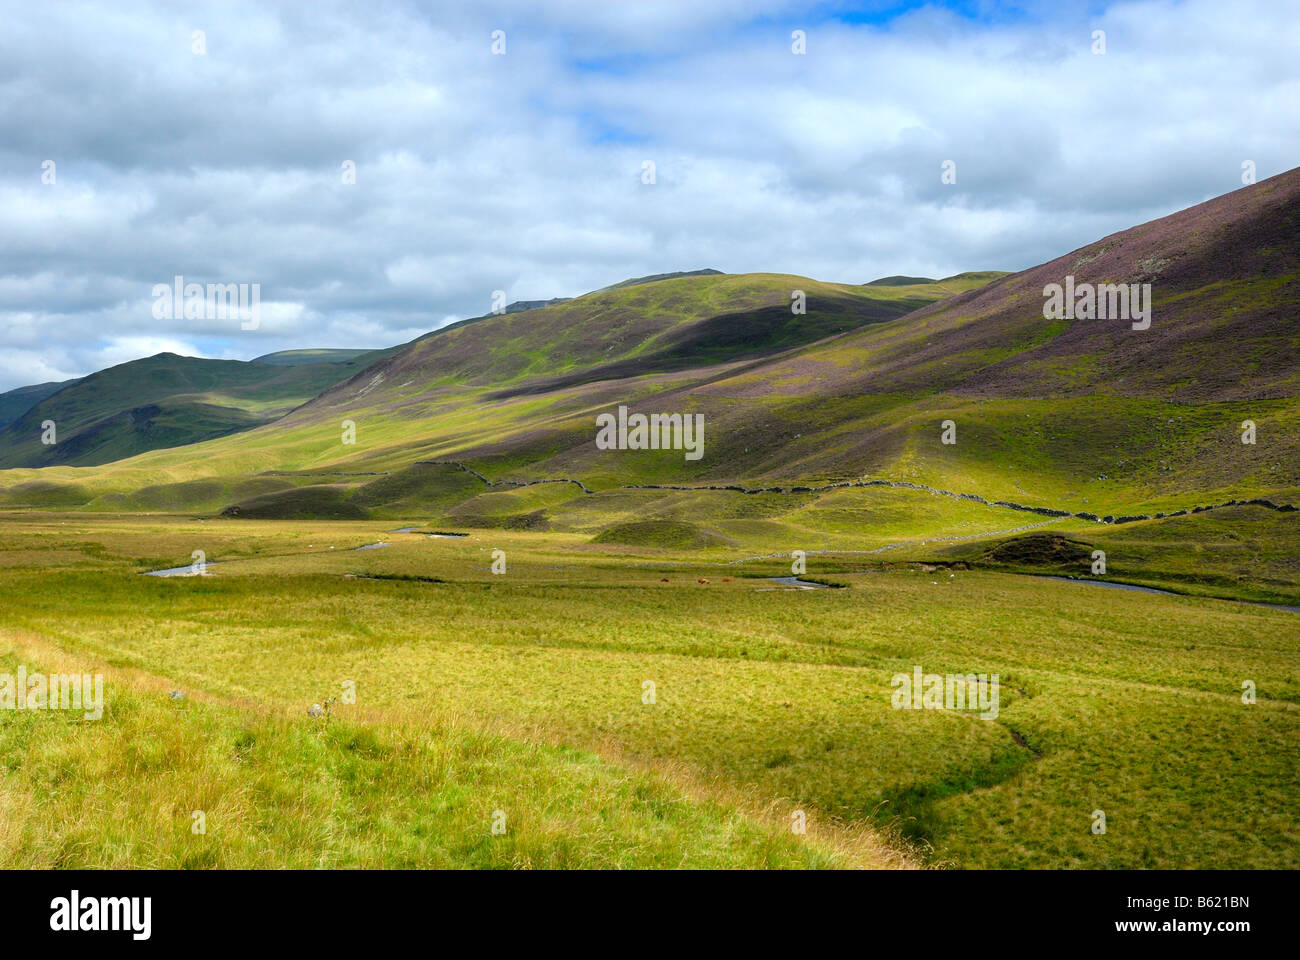 Grassy landscape of the Grampian Mountains, Scotland, Great Britain, Europe - Stock Image